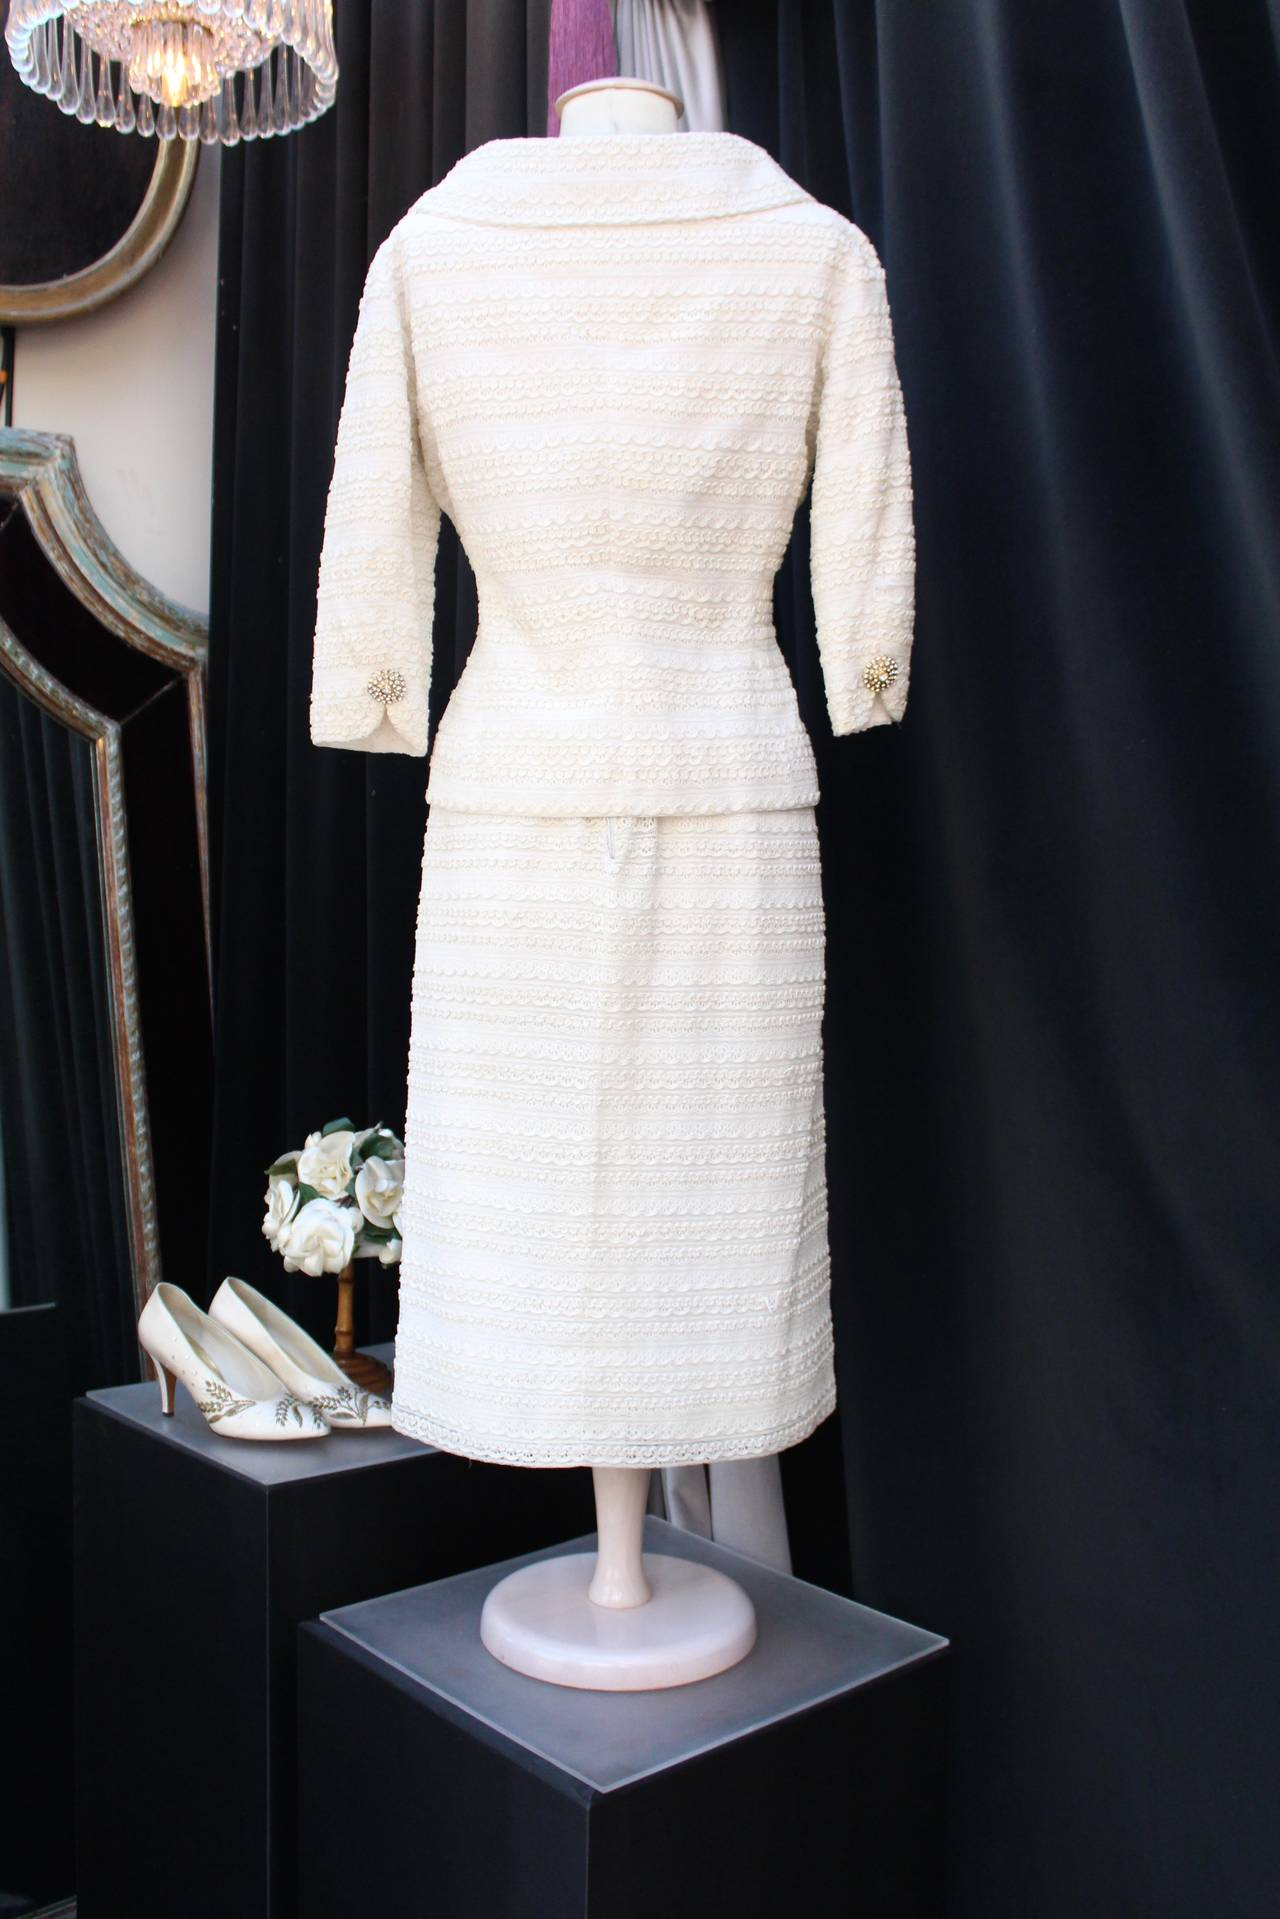 1961 Carven Haute Couture White Lace Dress and Jacket Ensemble 3